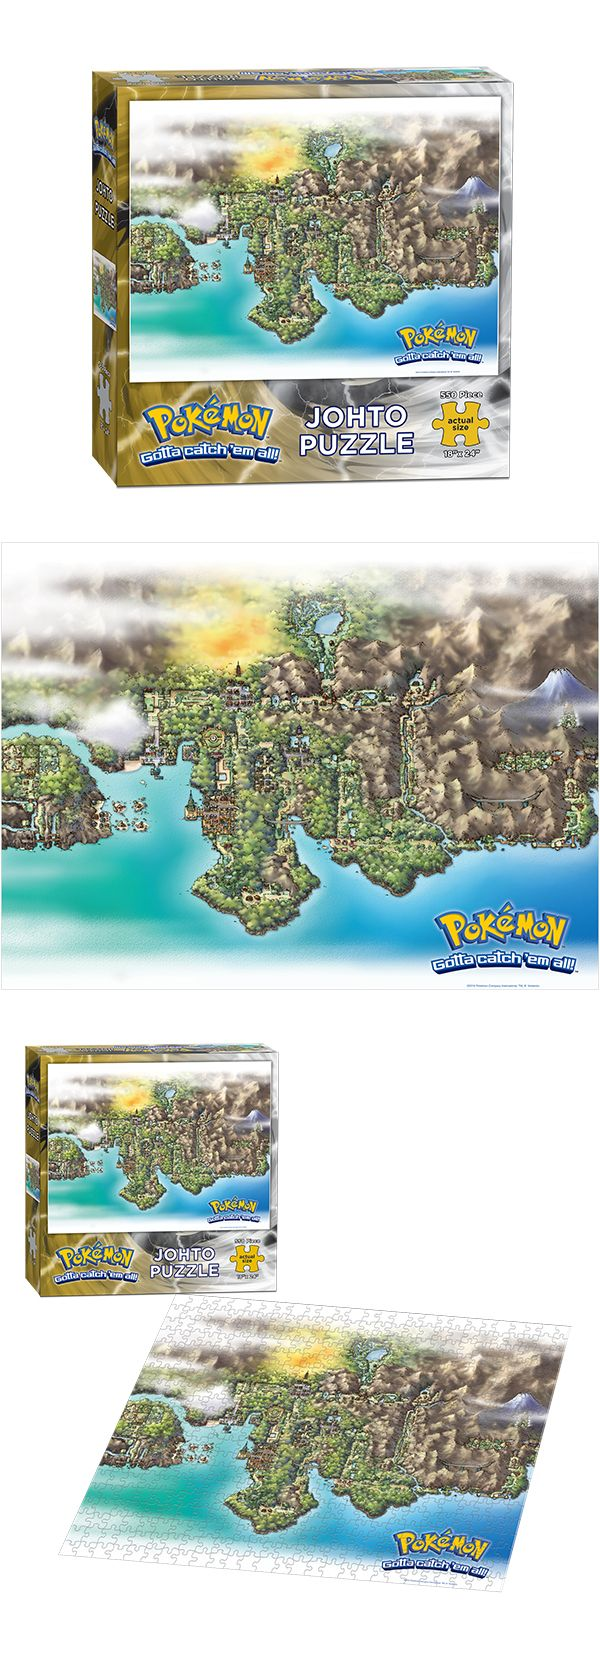 """Pokemon™ Johto Puzzle  Piece together a bit of the wonderful world of Pokémon. This 550-piece puzzle showcases a map of the Johto region.  550 Pieces   18"""" x 24"""" Finished Size   MSRP: $10.95  FOR SALE ONLY IN THE UNITED STATES AND CANADA."""